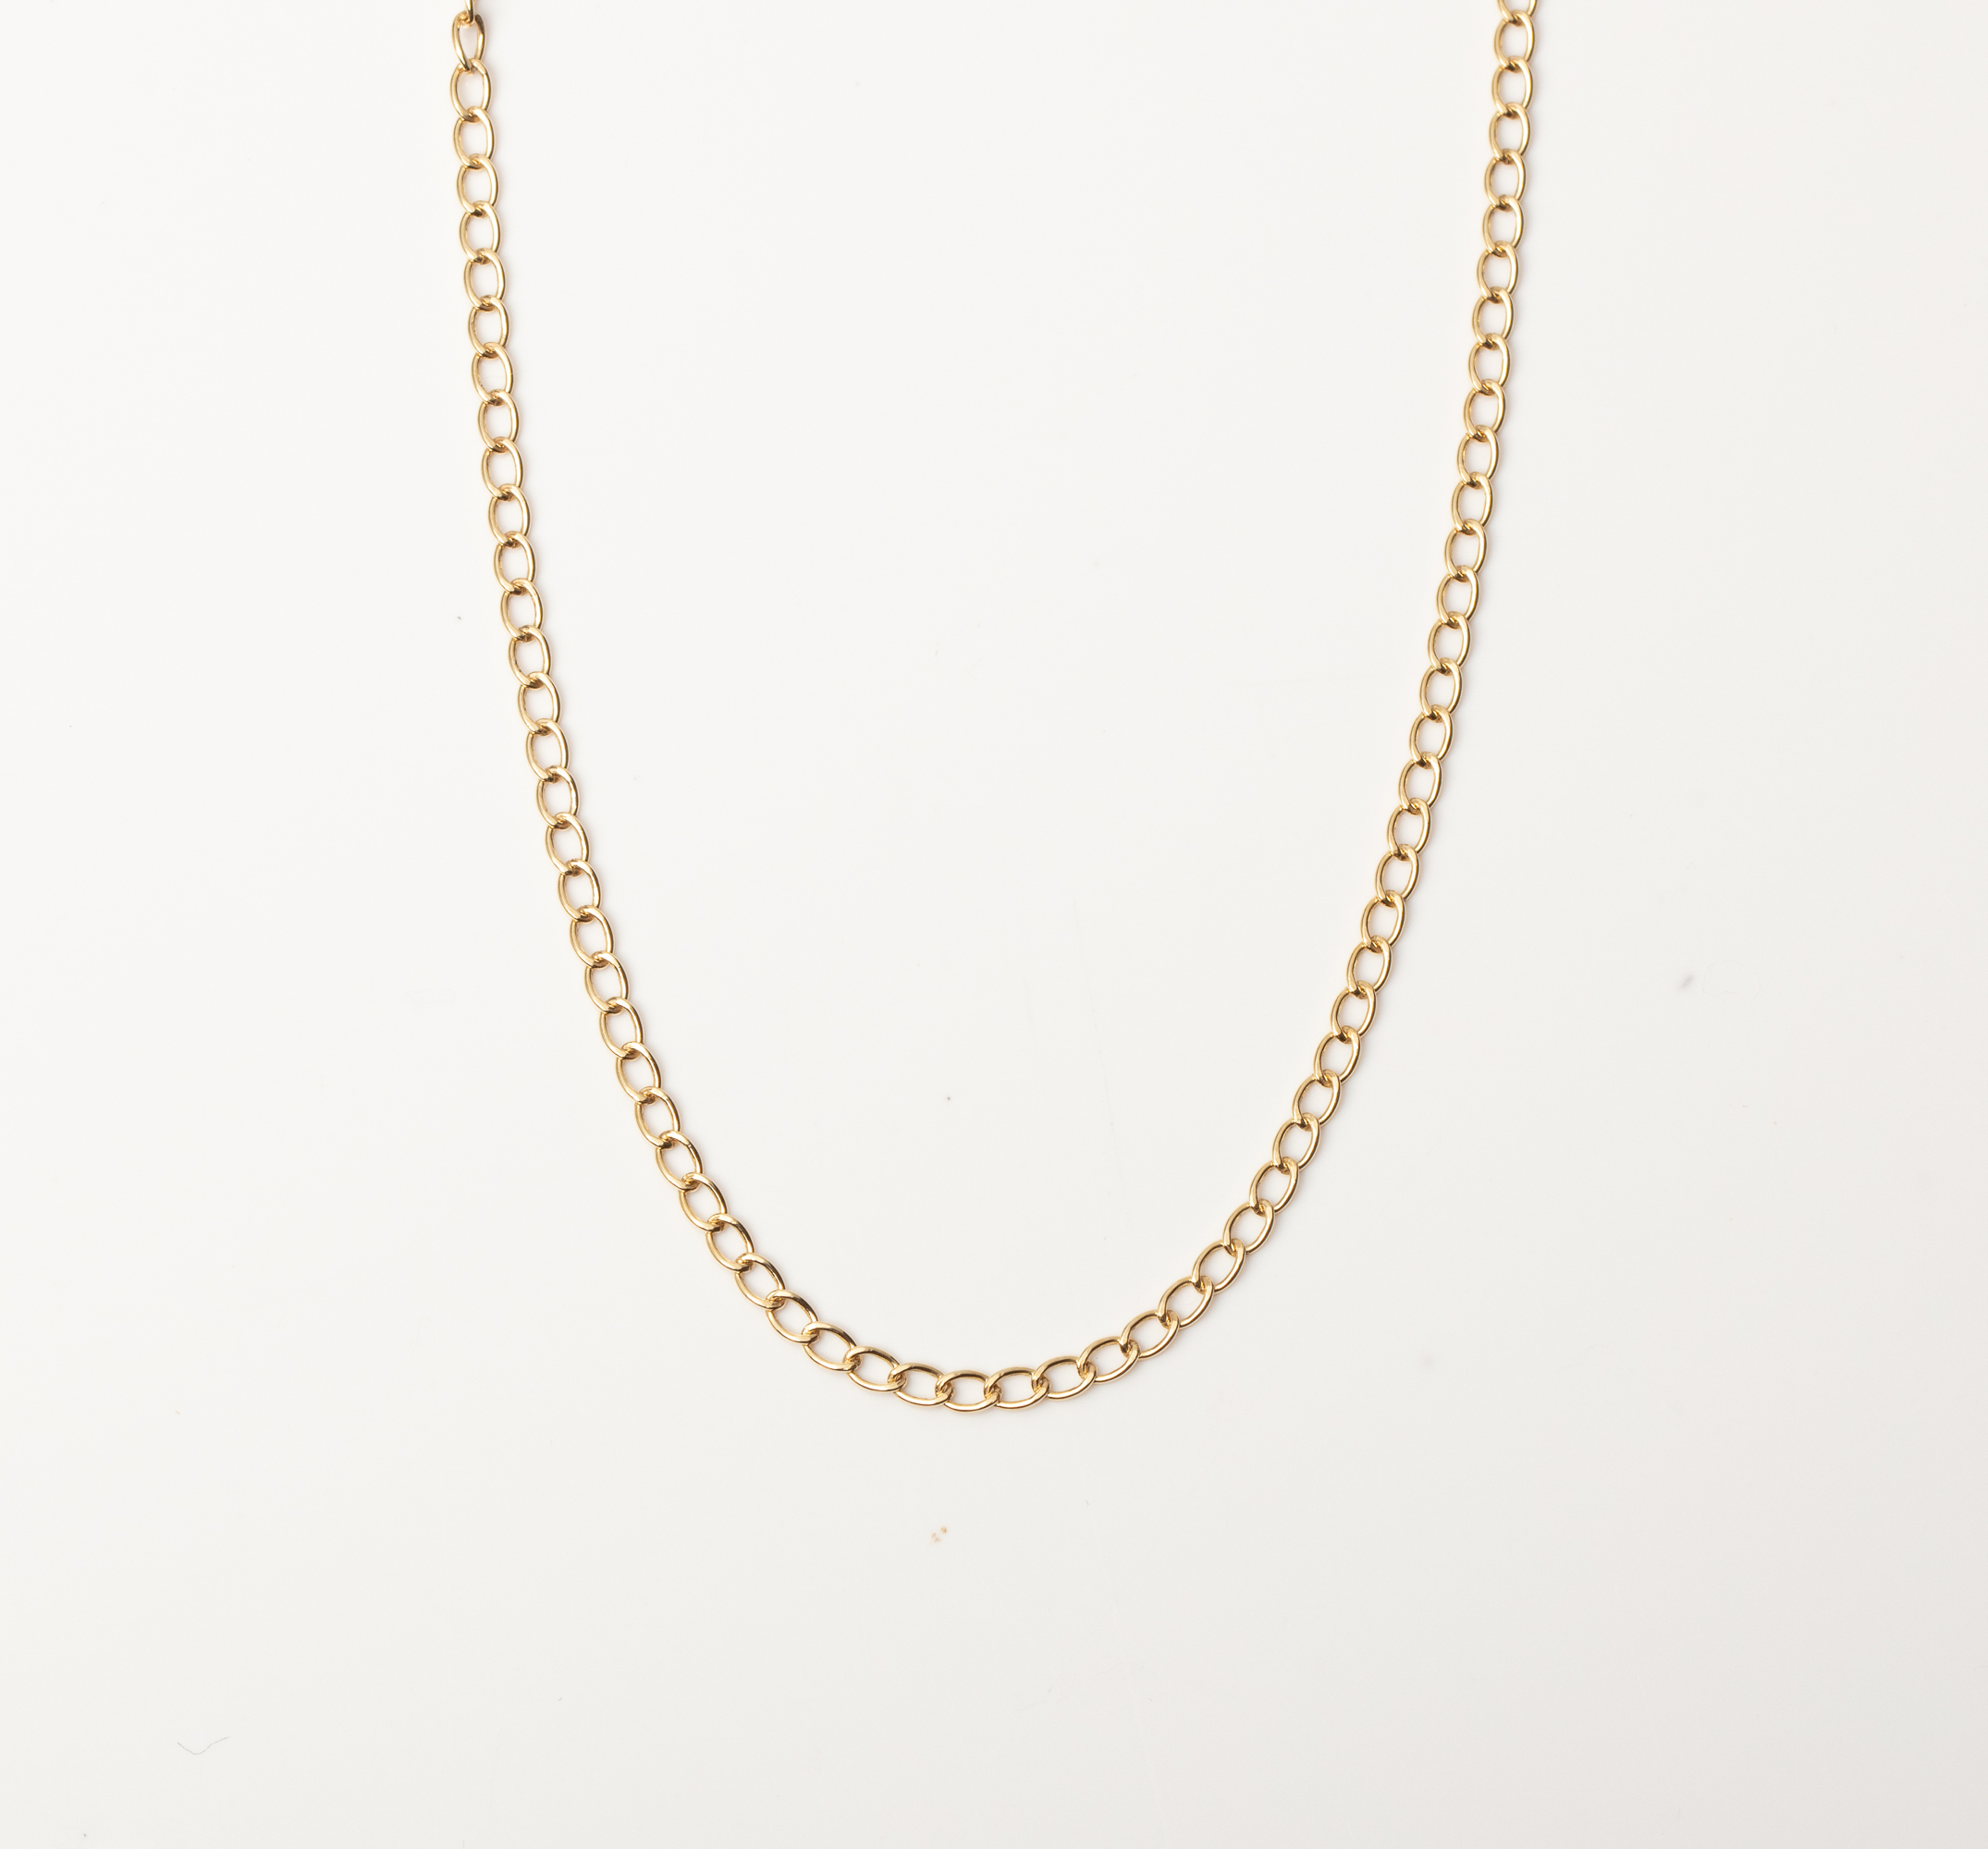 A 9CT GOLD AND SILVER BONDED FANCY LINK CHAIN